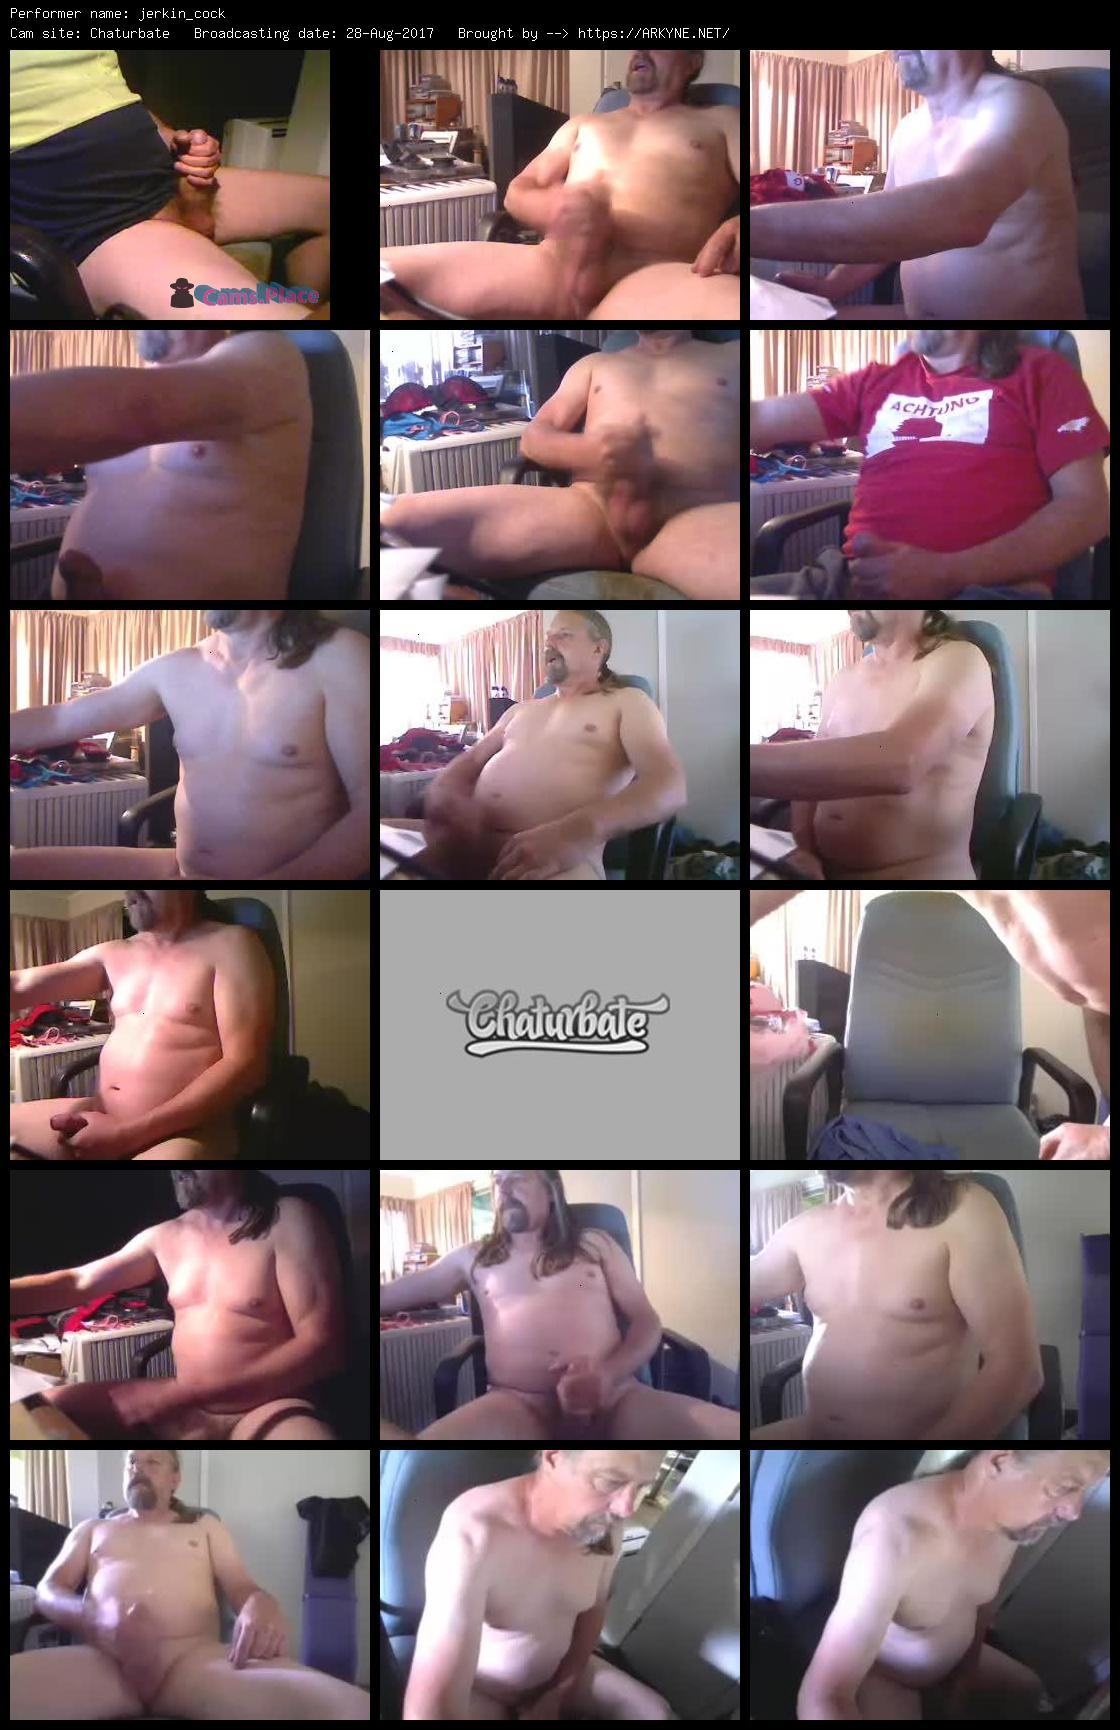 jerkin_cock's Show Preview